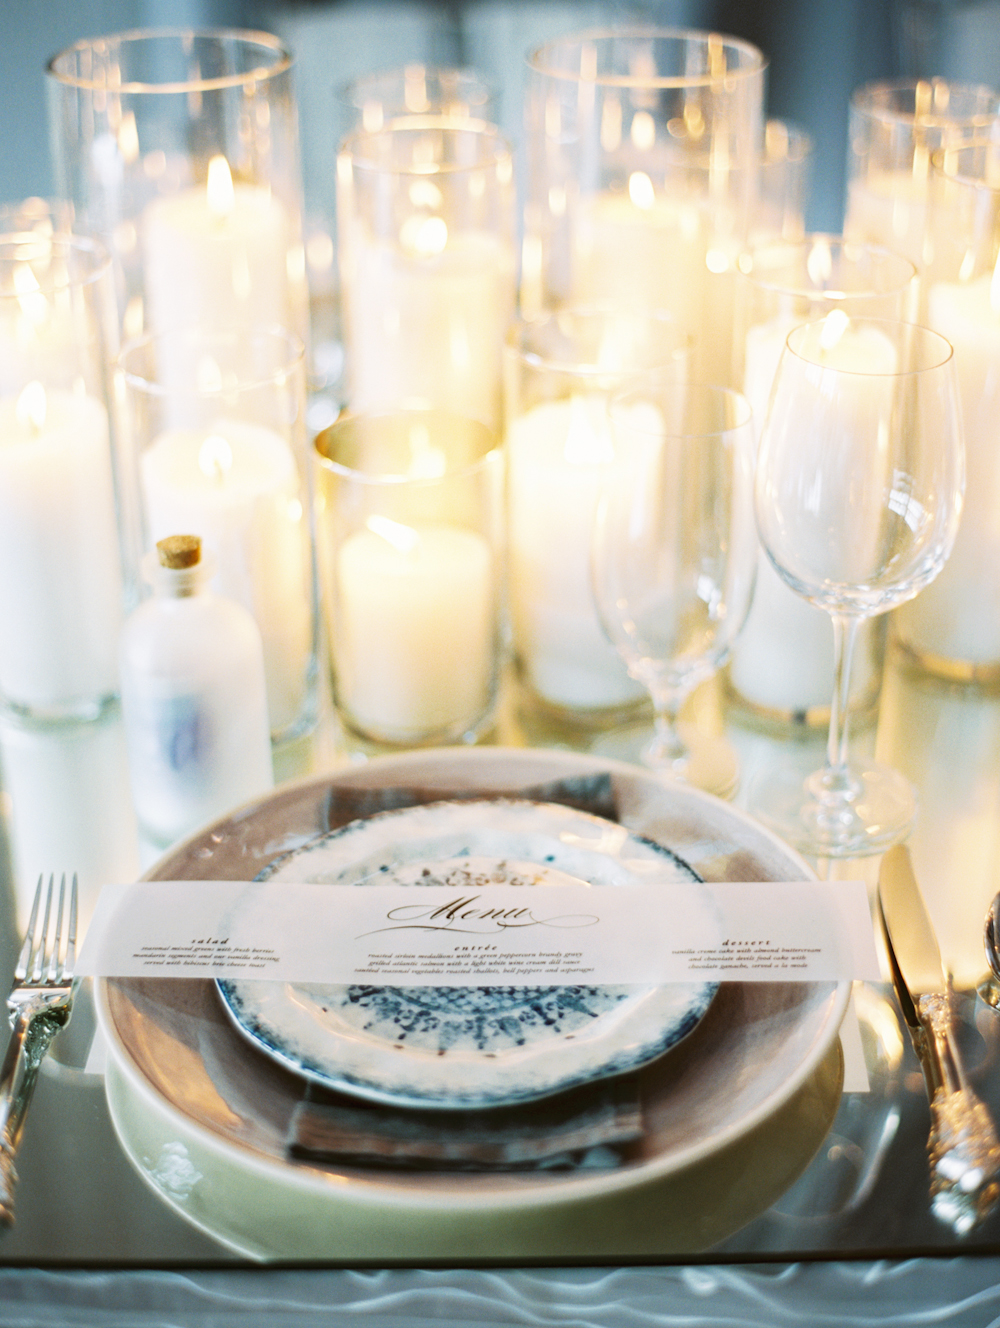 Mermaid Wedding Styled Shoot Place Setting